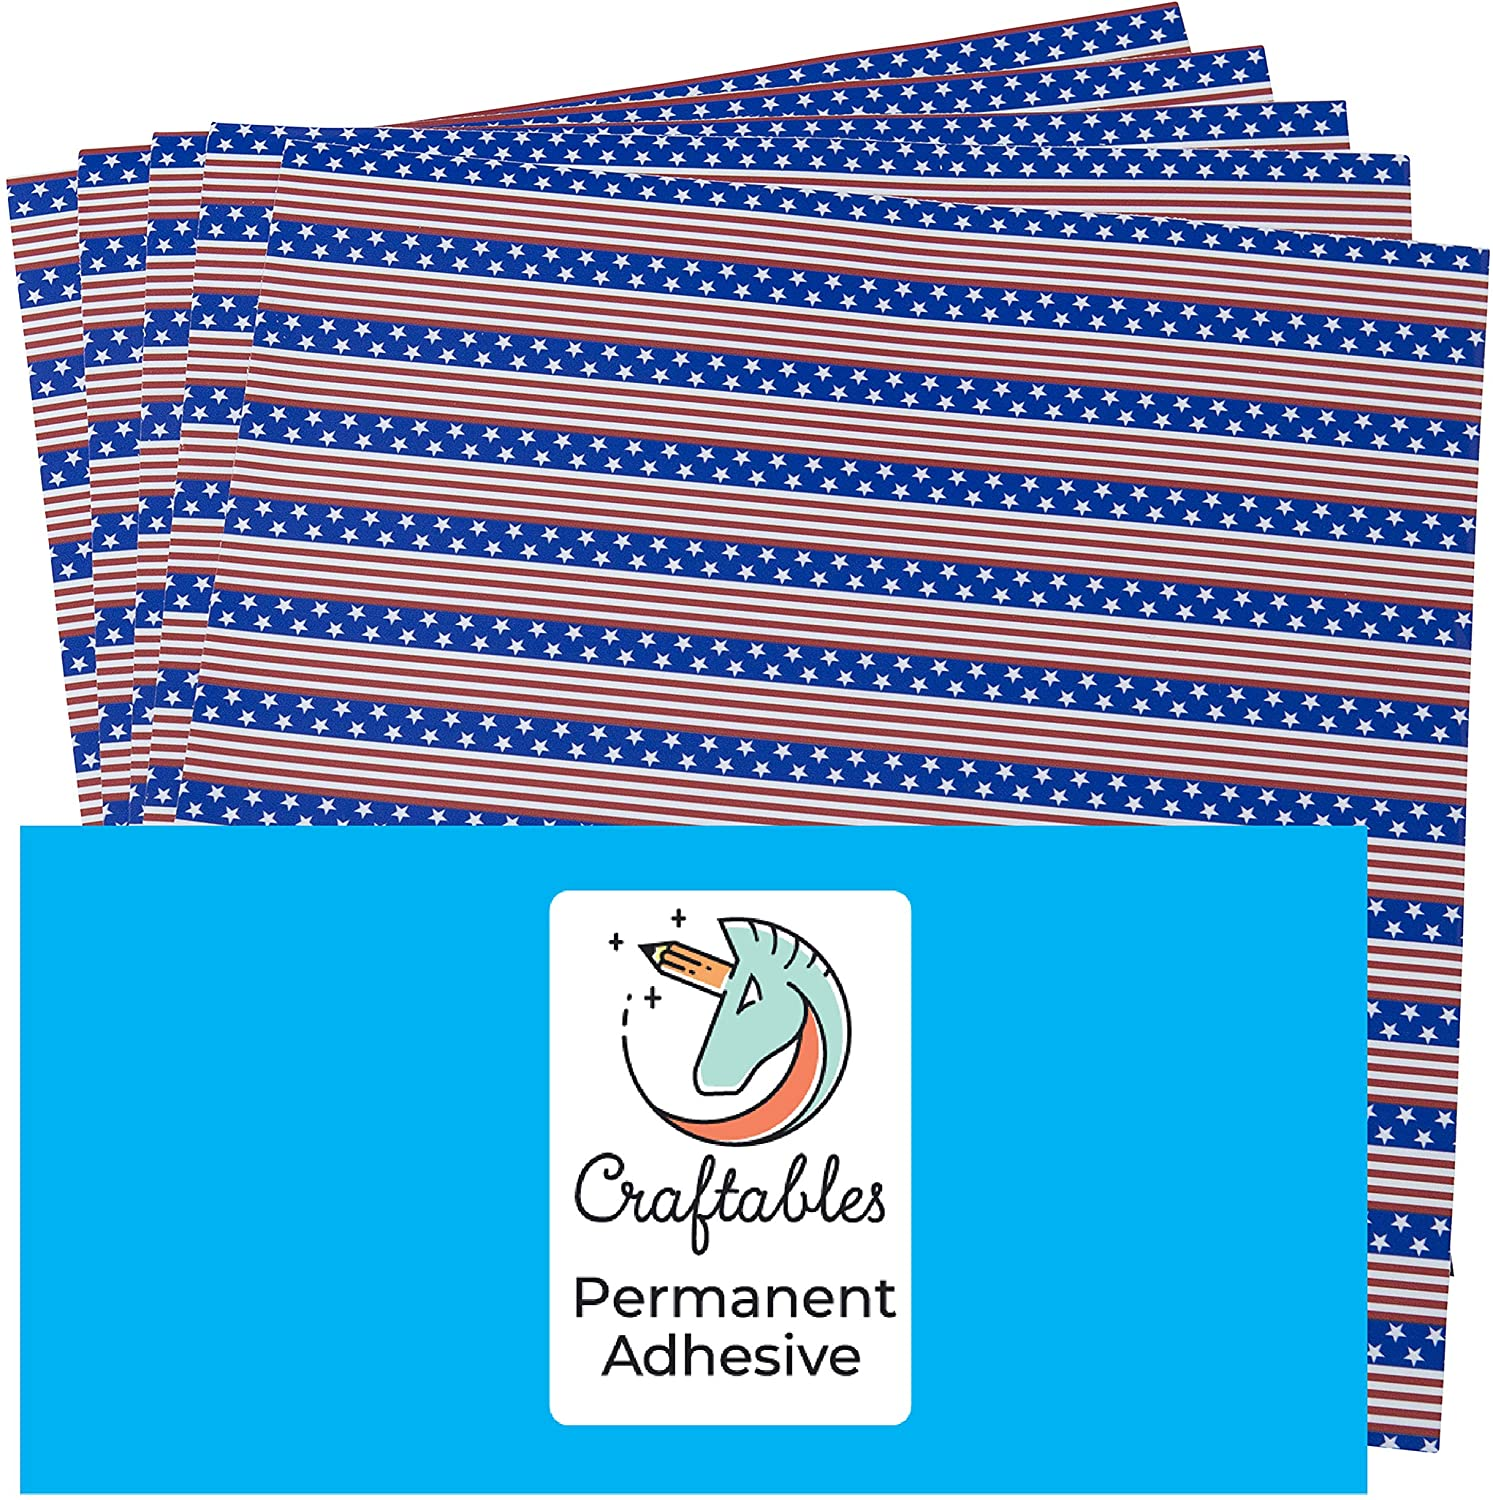 American Flag Pattern Self Adhesive Craft Vinyl Printed Sheets for Cricut, Silhouette, Cameo, Decals, Signs, Stickers by Craftables